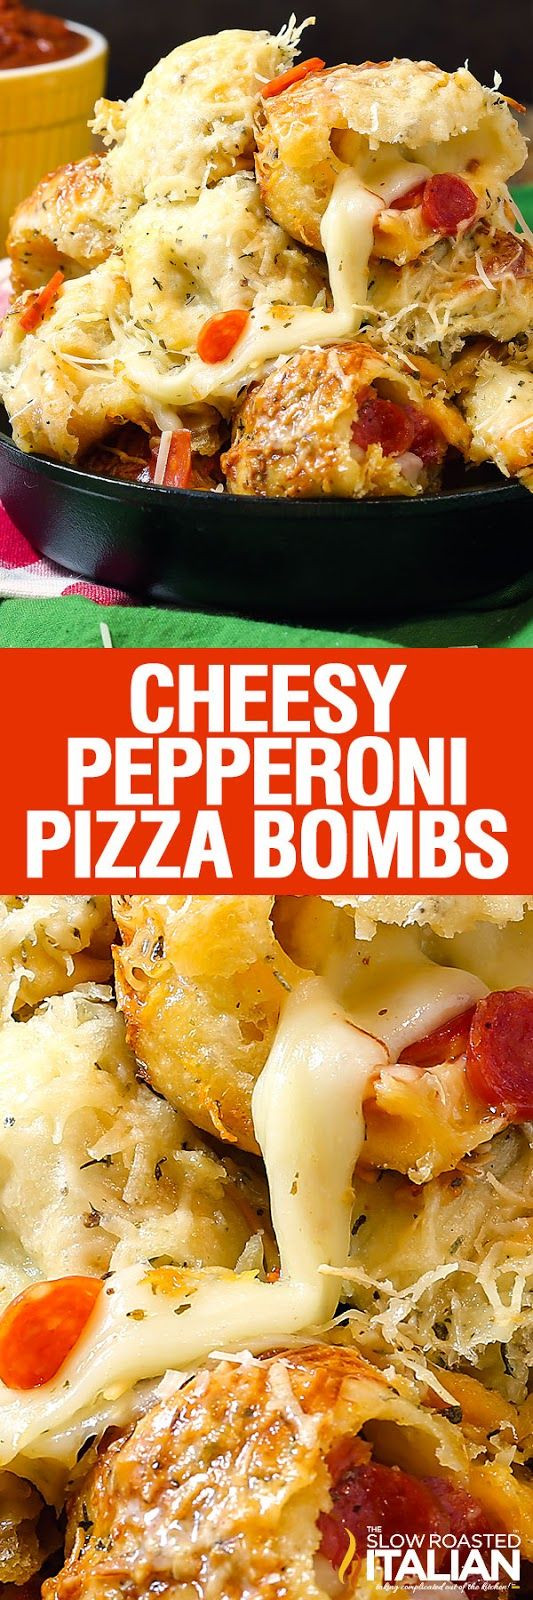 Glorious Cheesy Pepperoni Pizza Bombs are perfectly seasoned bread bites loaded with pepperoni and tons of ooey gooey cheese, baked to perfection.  That makes this easy recipe a game day winner!